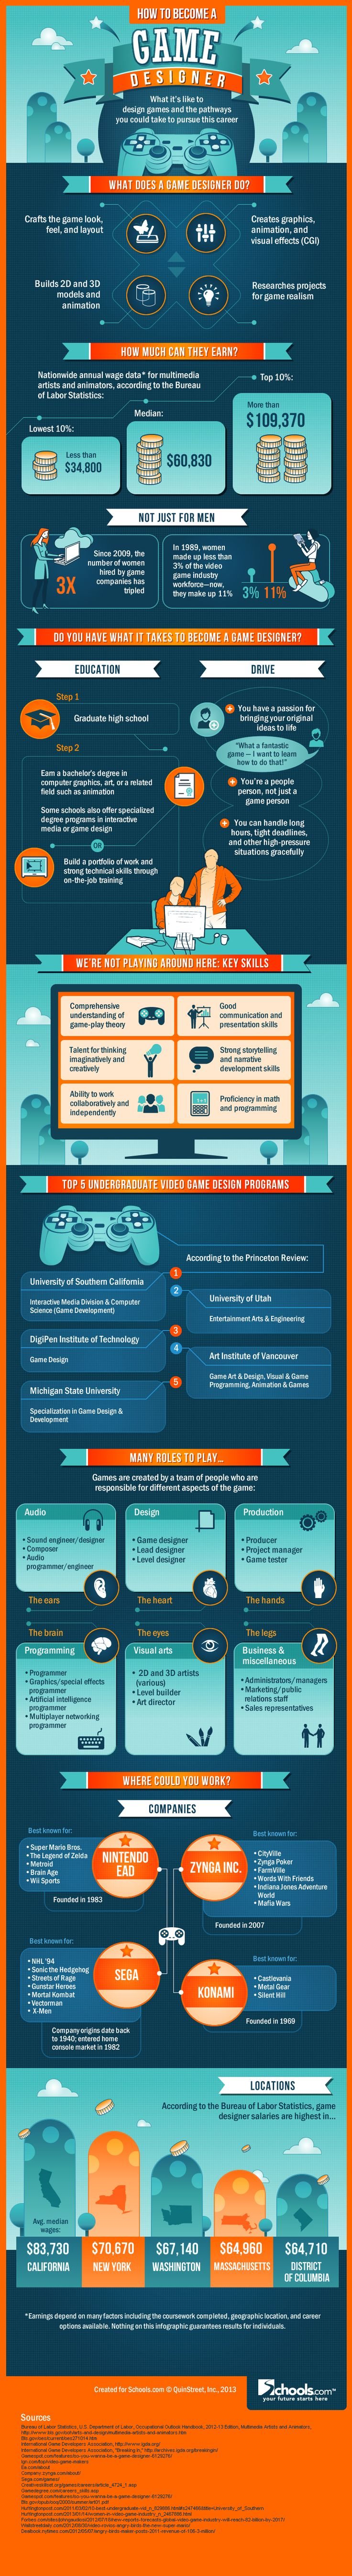 take a look at this nice horribly wrong infographic i - Game Design Ideas